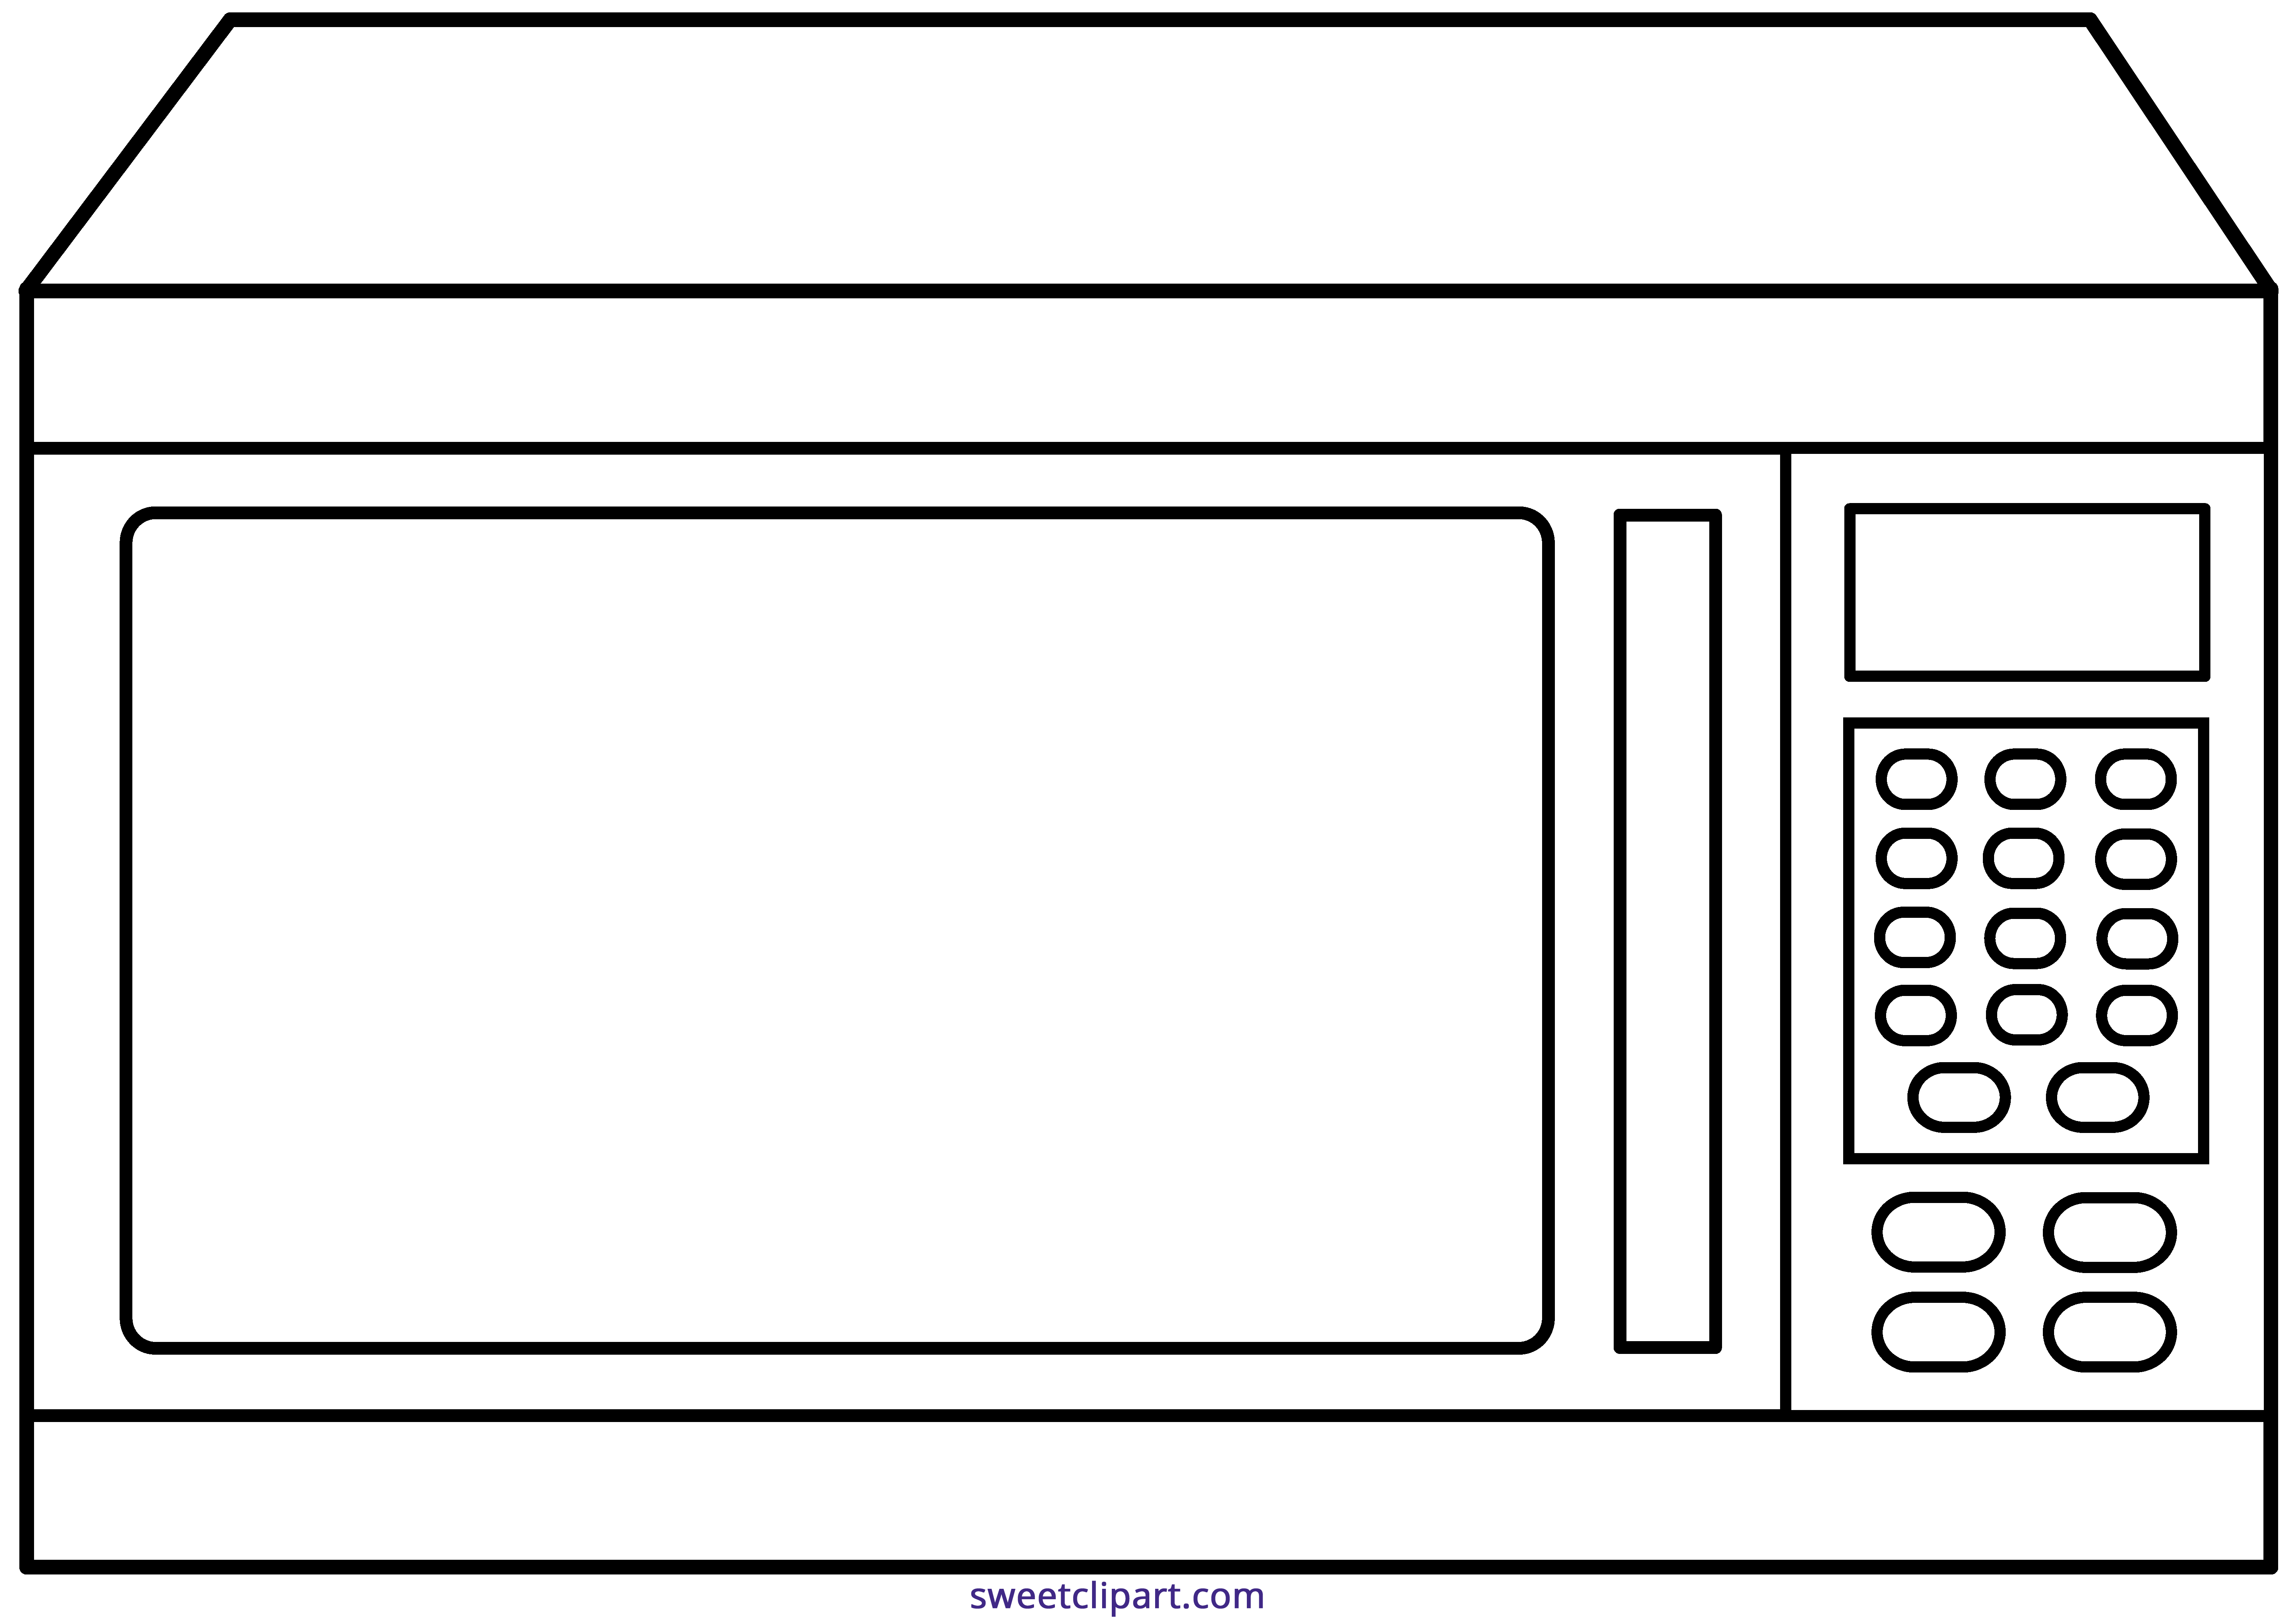 Microwave clipart. Outline sweet clip art